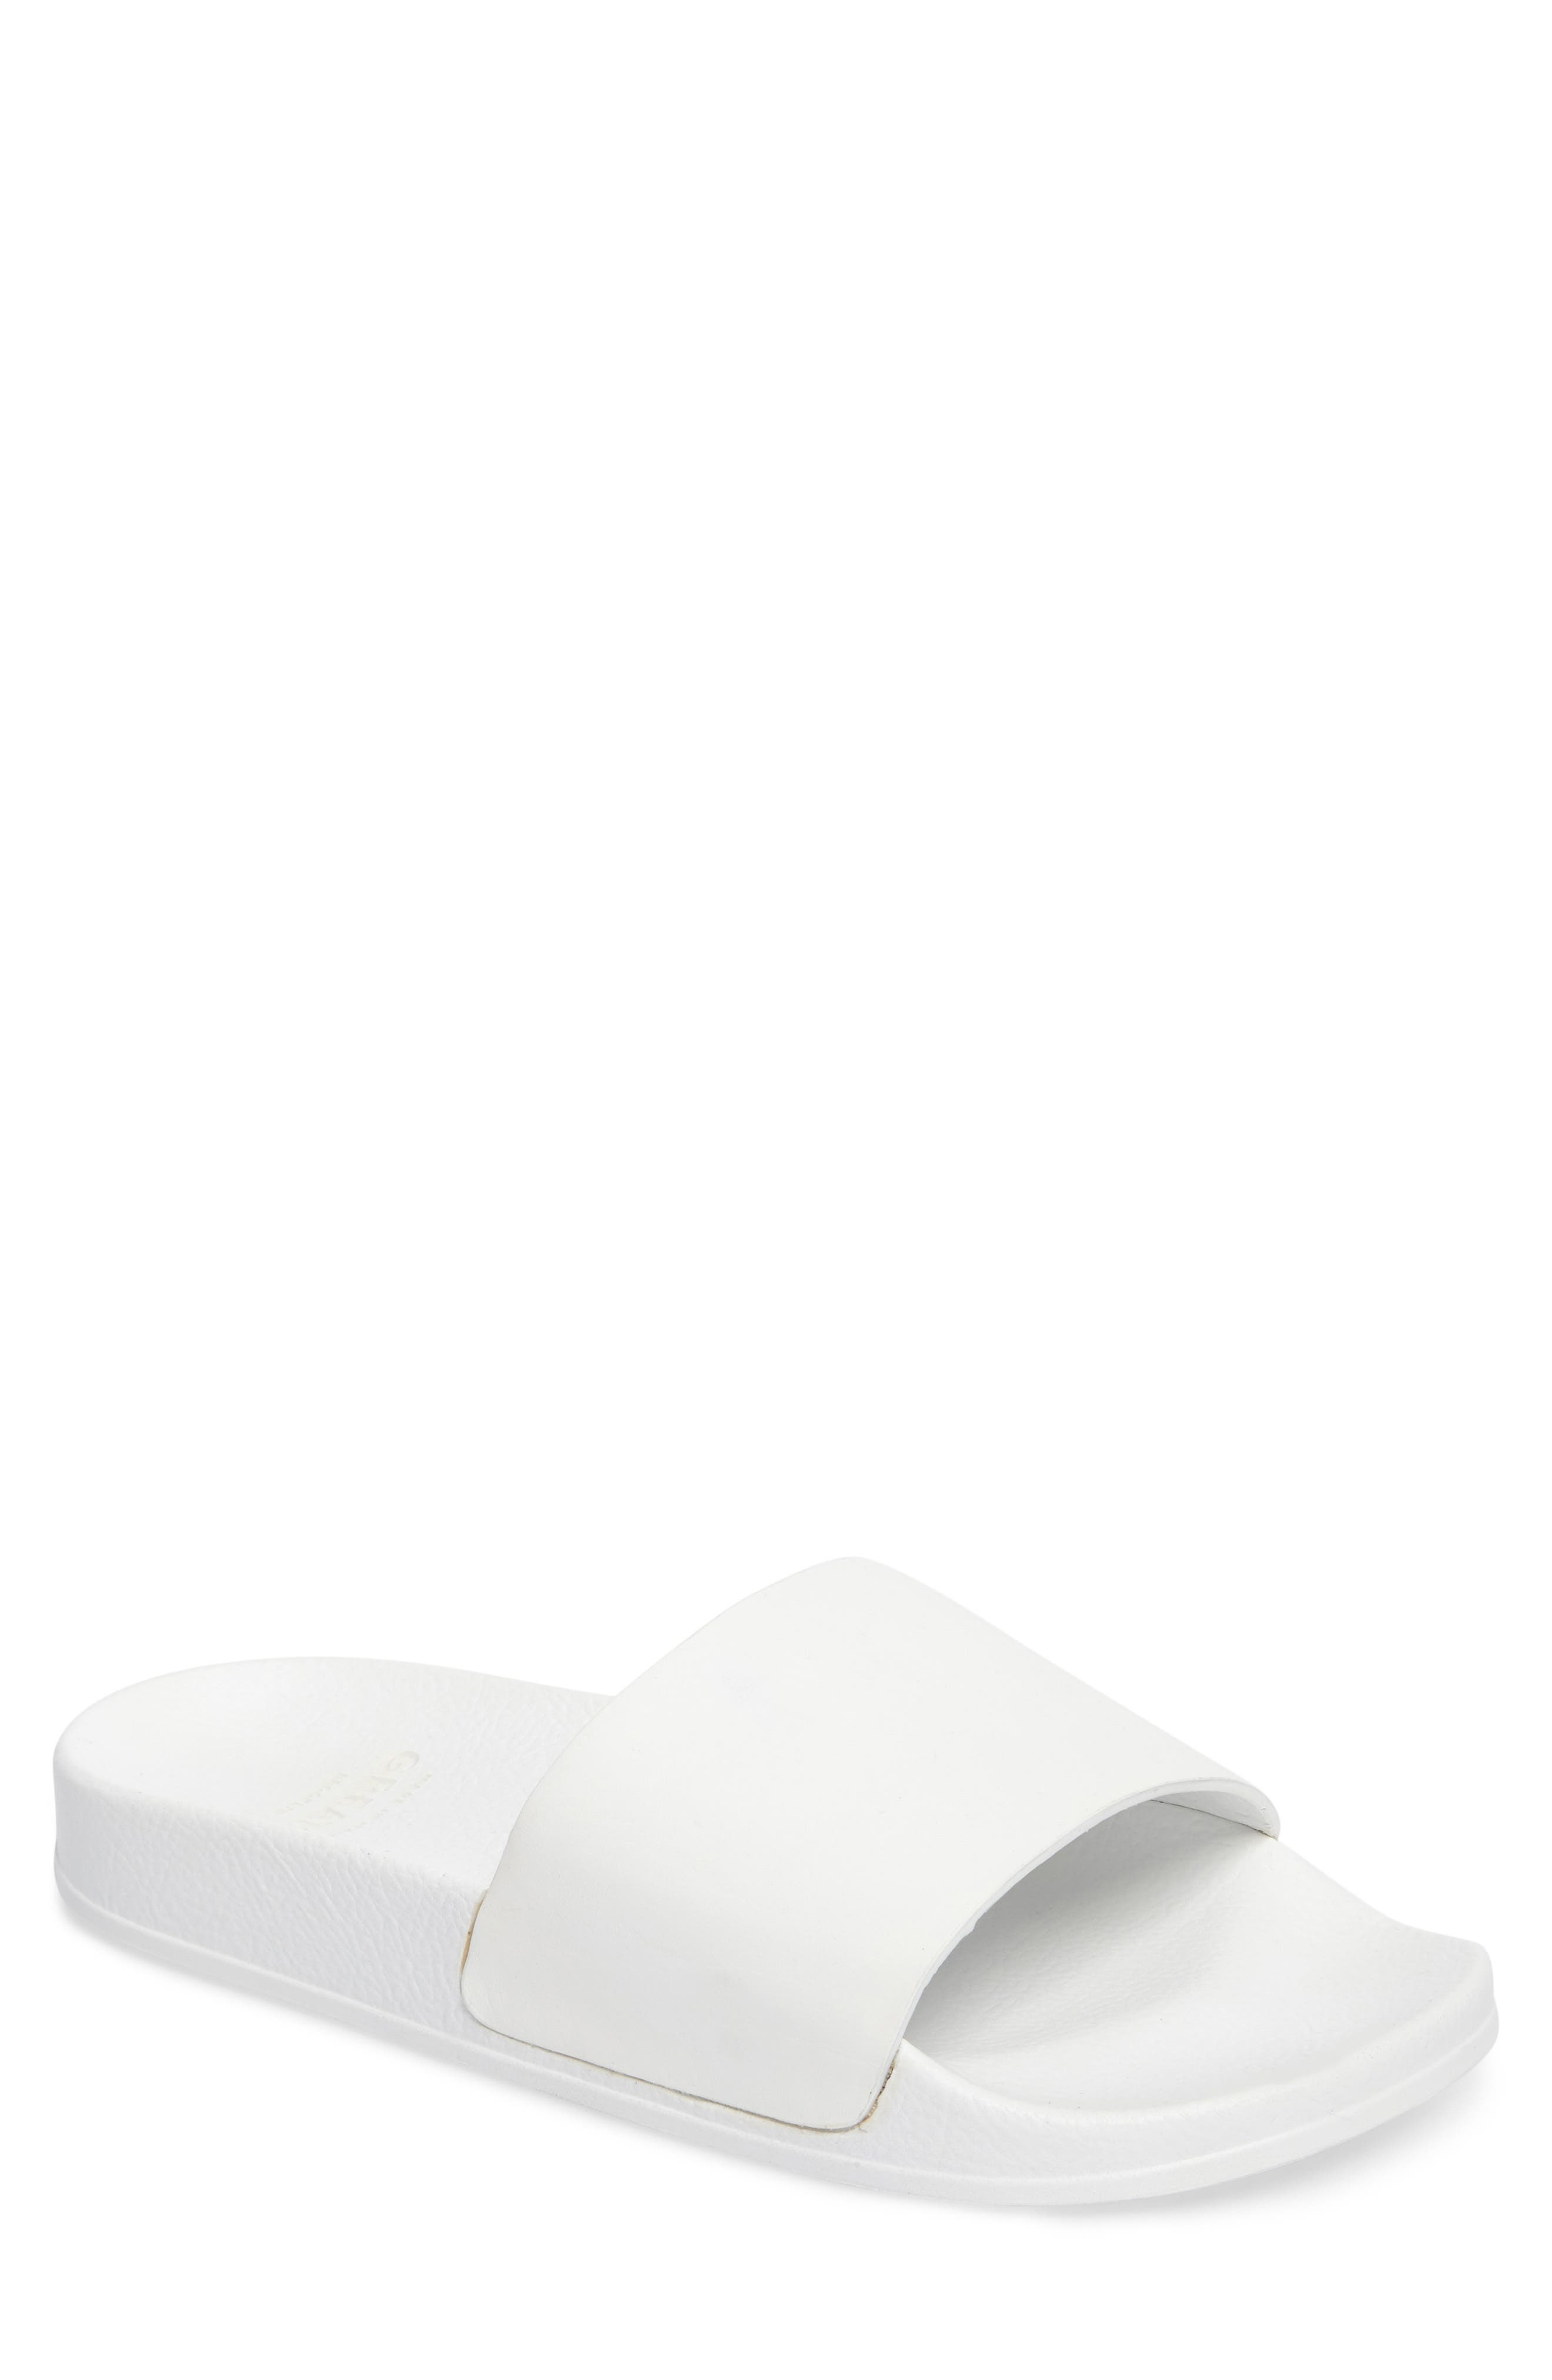 Greats Slide Sandal (Men)